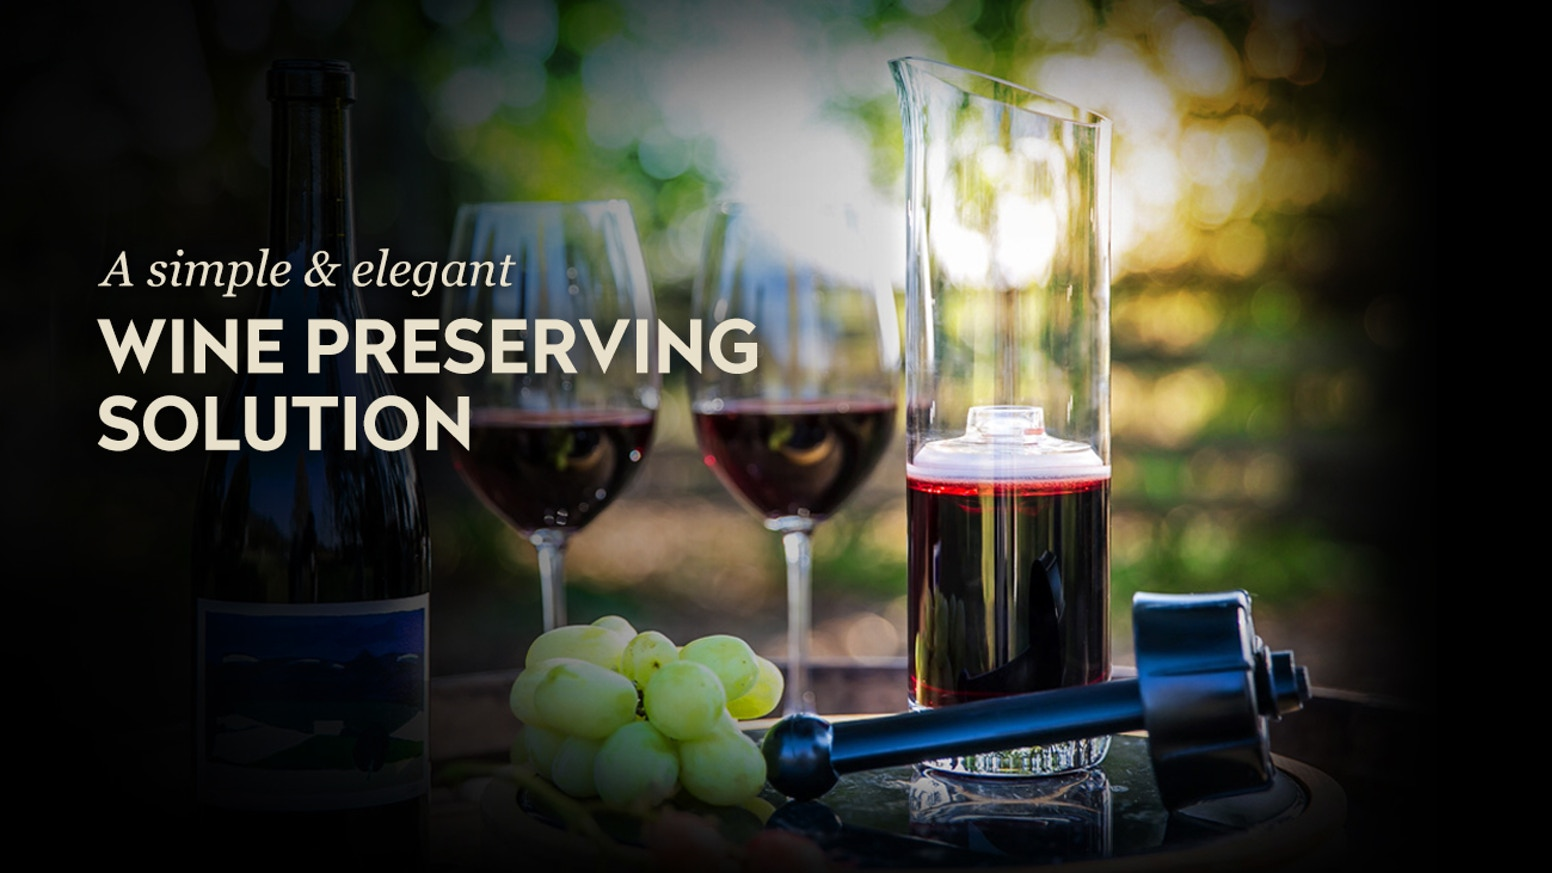 A revolutionary, portable wine preserving decanter with airtight sealing mechanism that keeps wine tasting great for weeks at a time.